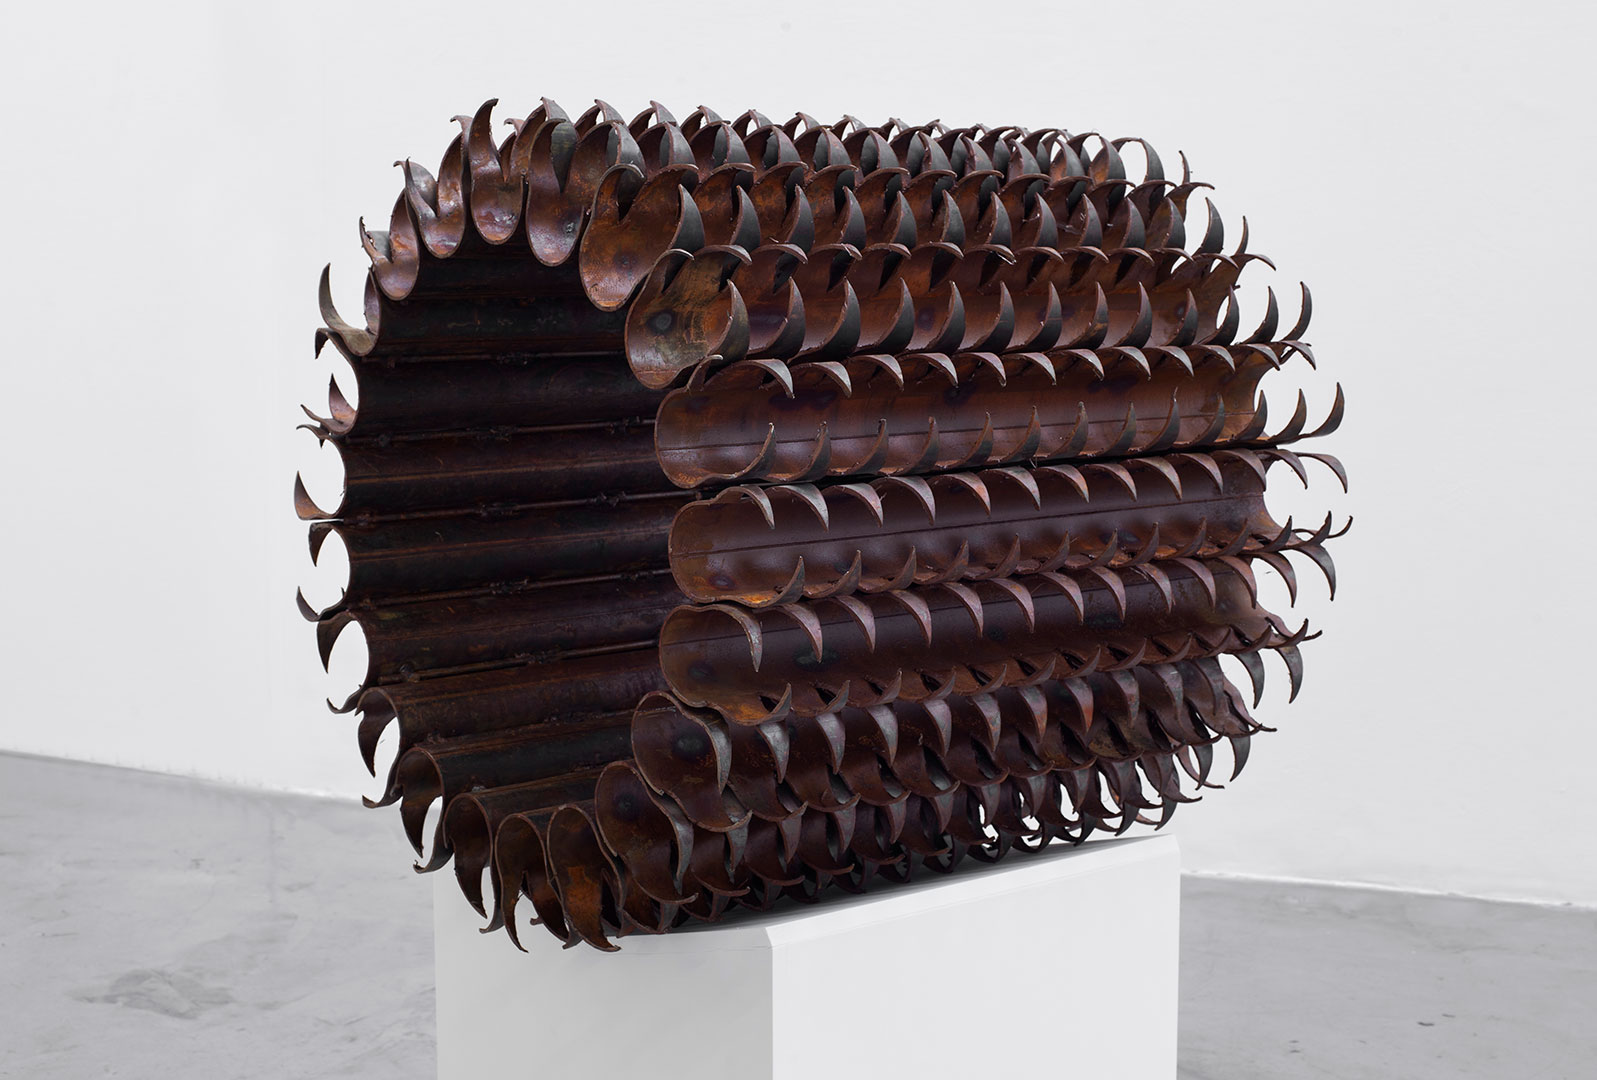 Untitled | 70 x 70 x 70 cm | Iron piping